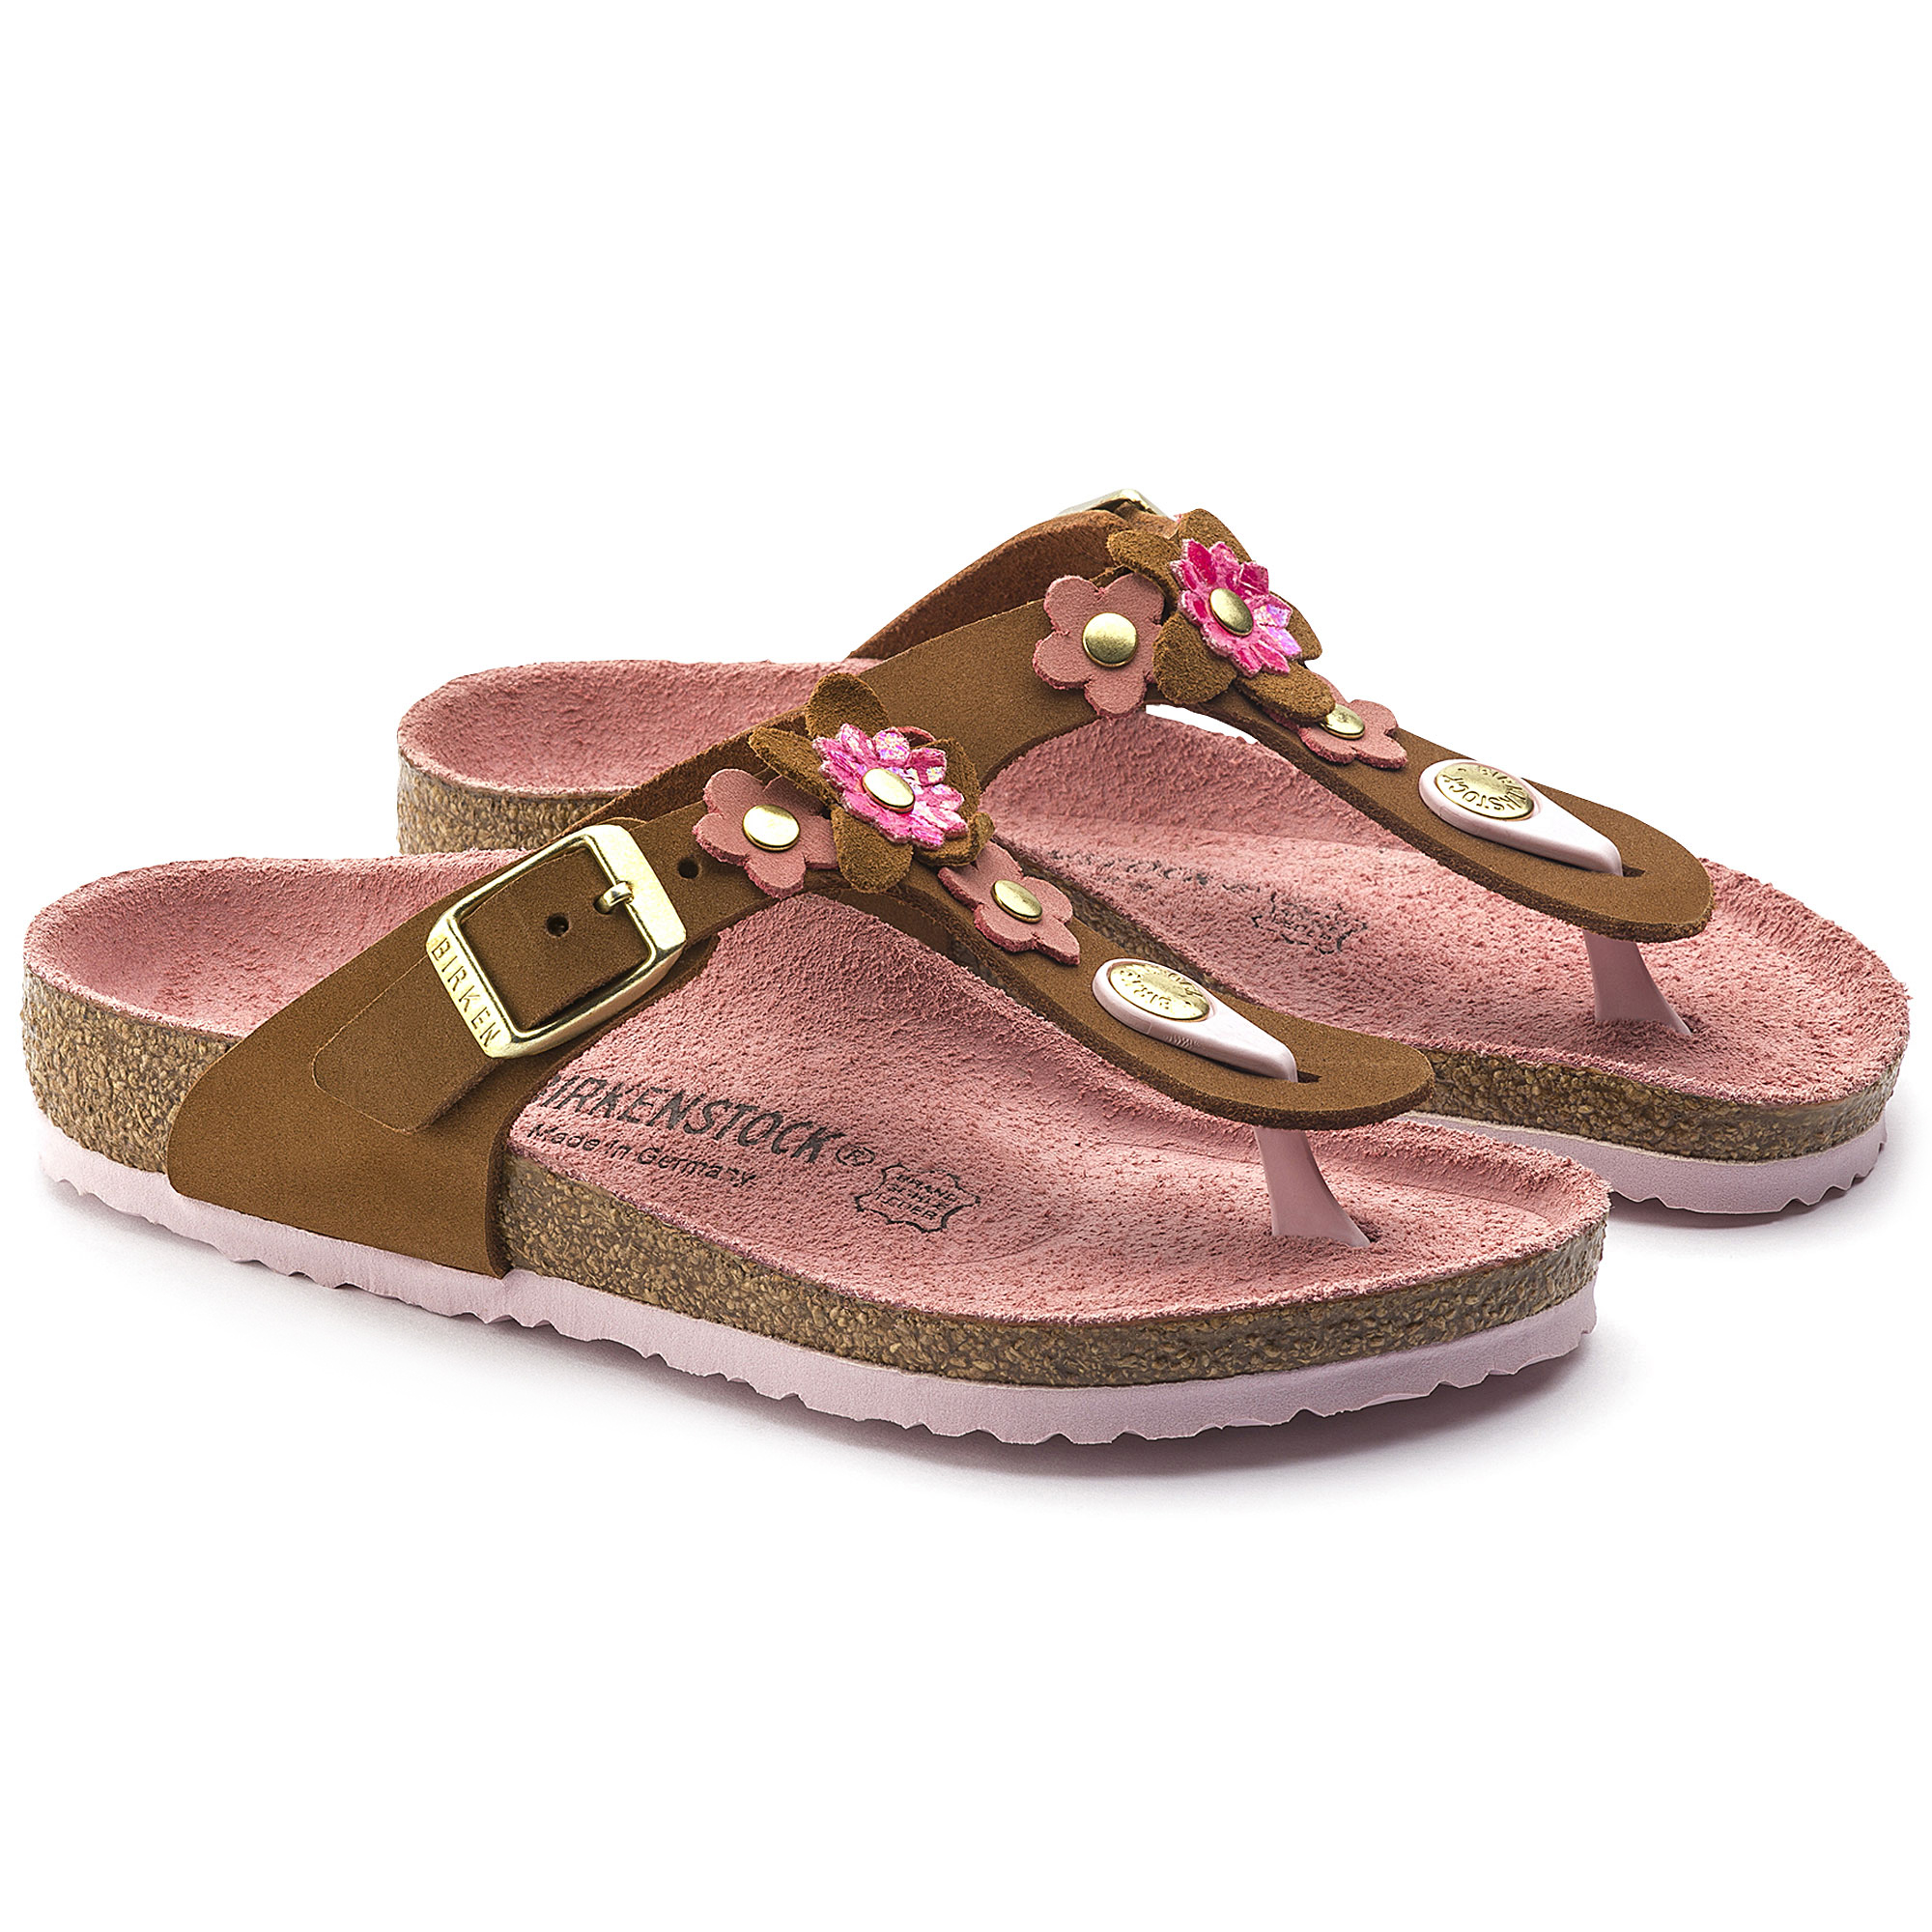 Search For Tags: BIRKENSTOCK Kids GIZEH FLOWER New